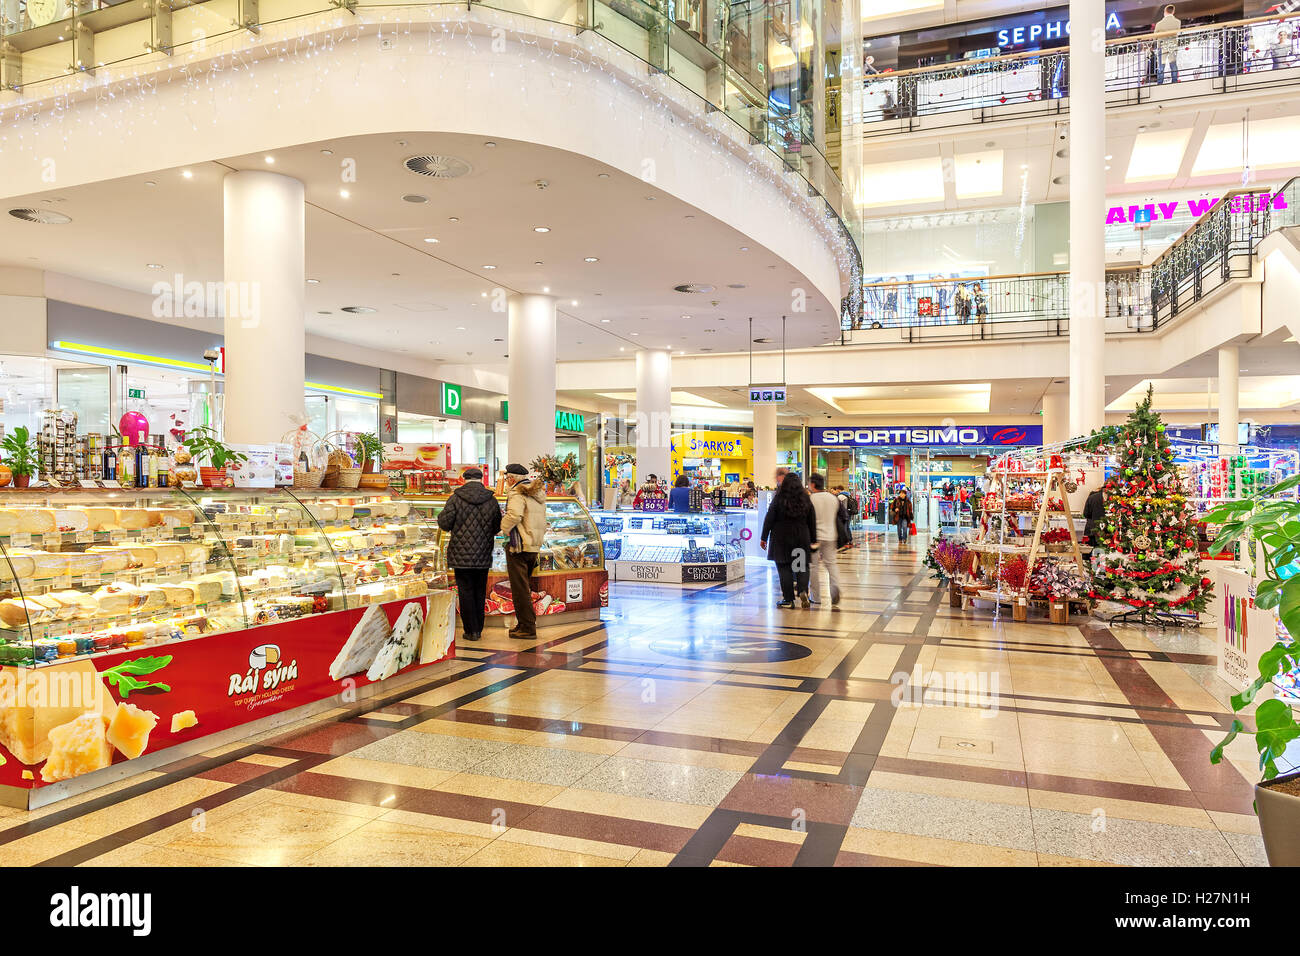 Interior view of Palladium shopping center decorated for Christmas holidays. - Stock Image